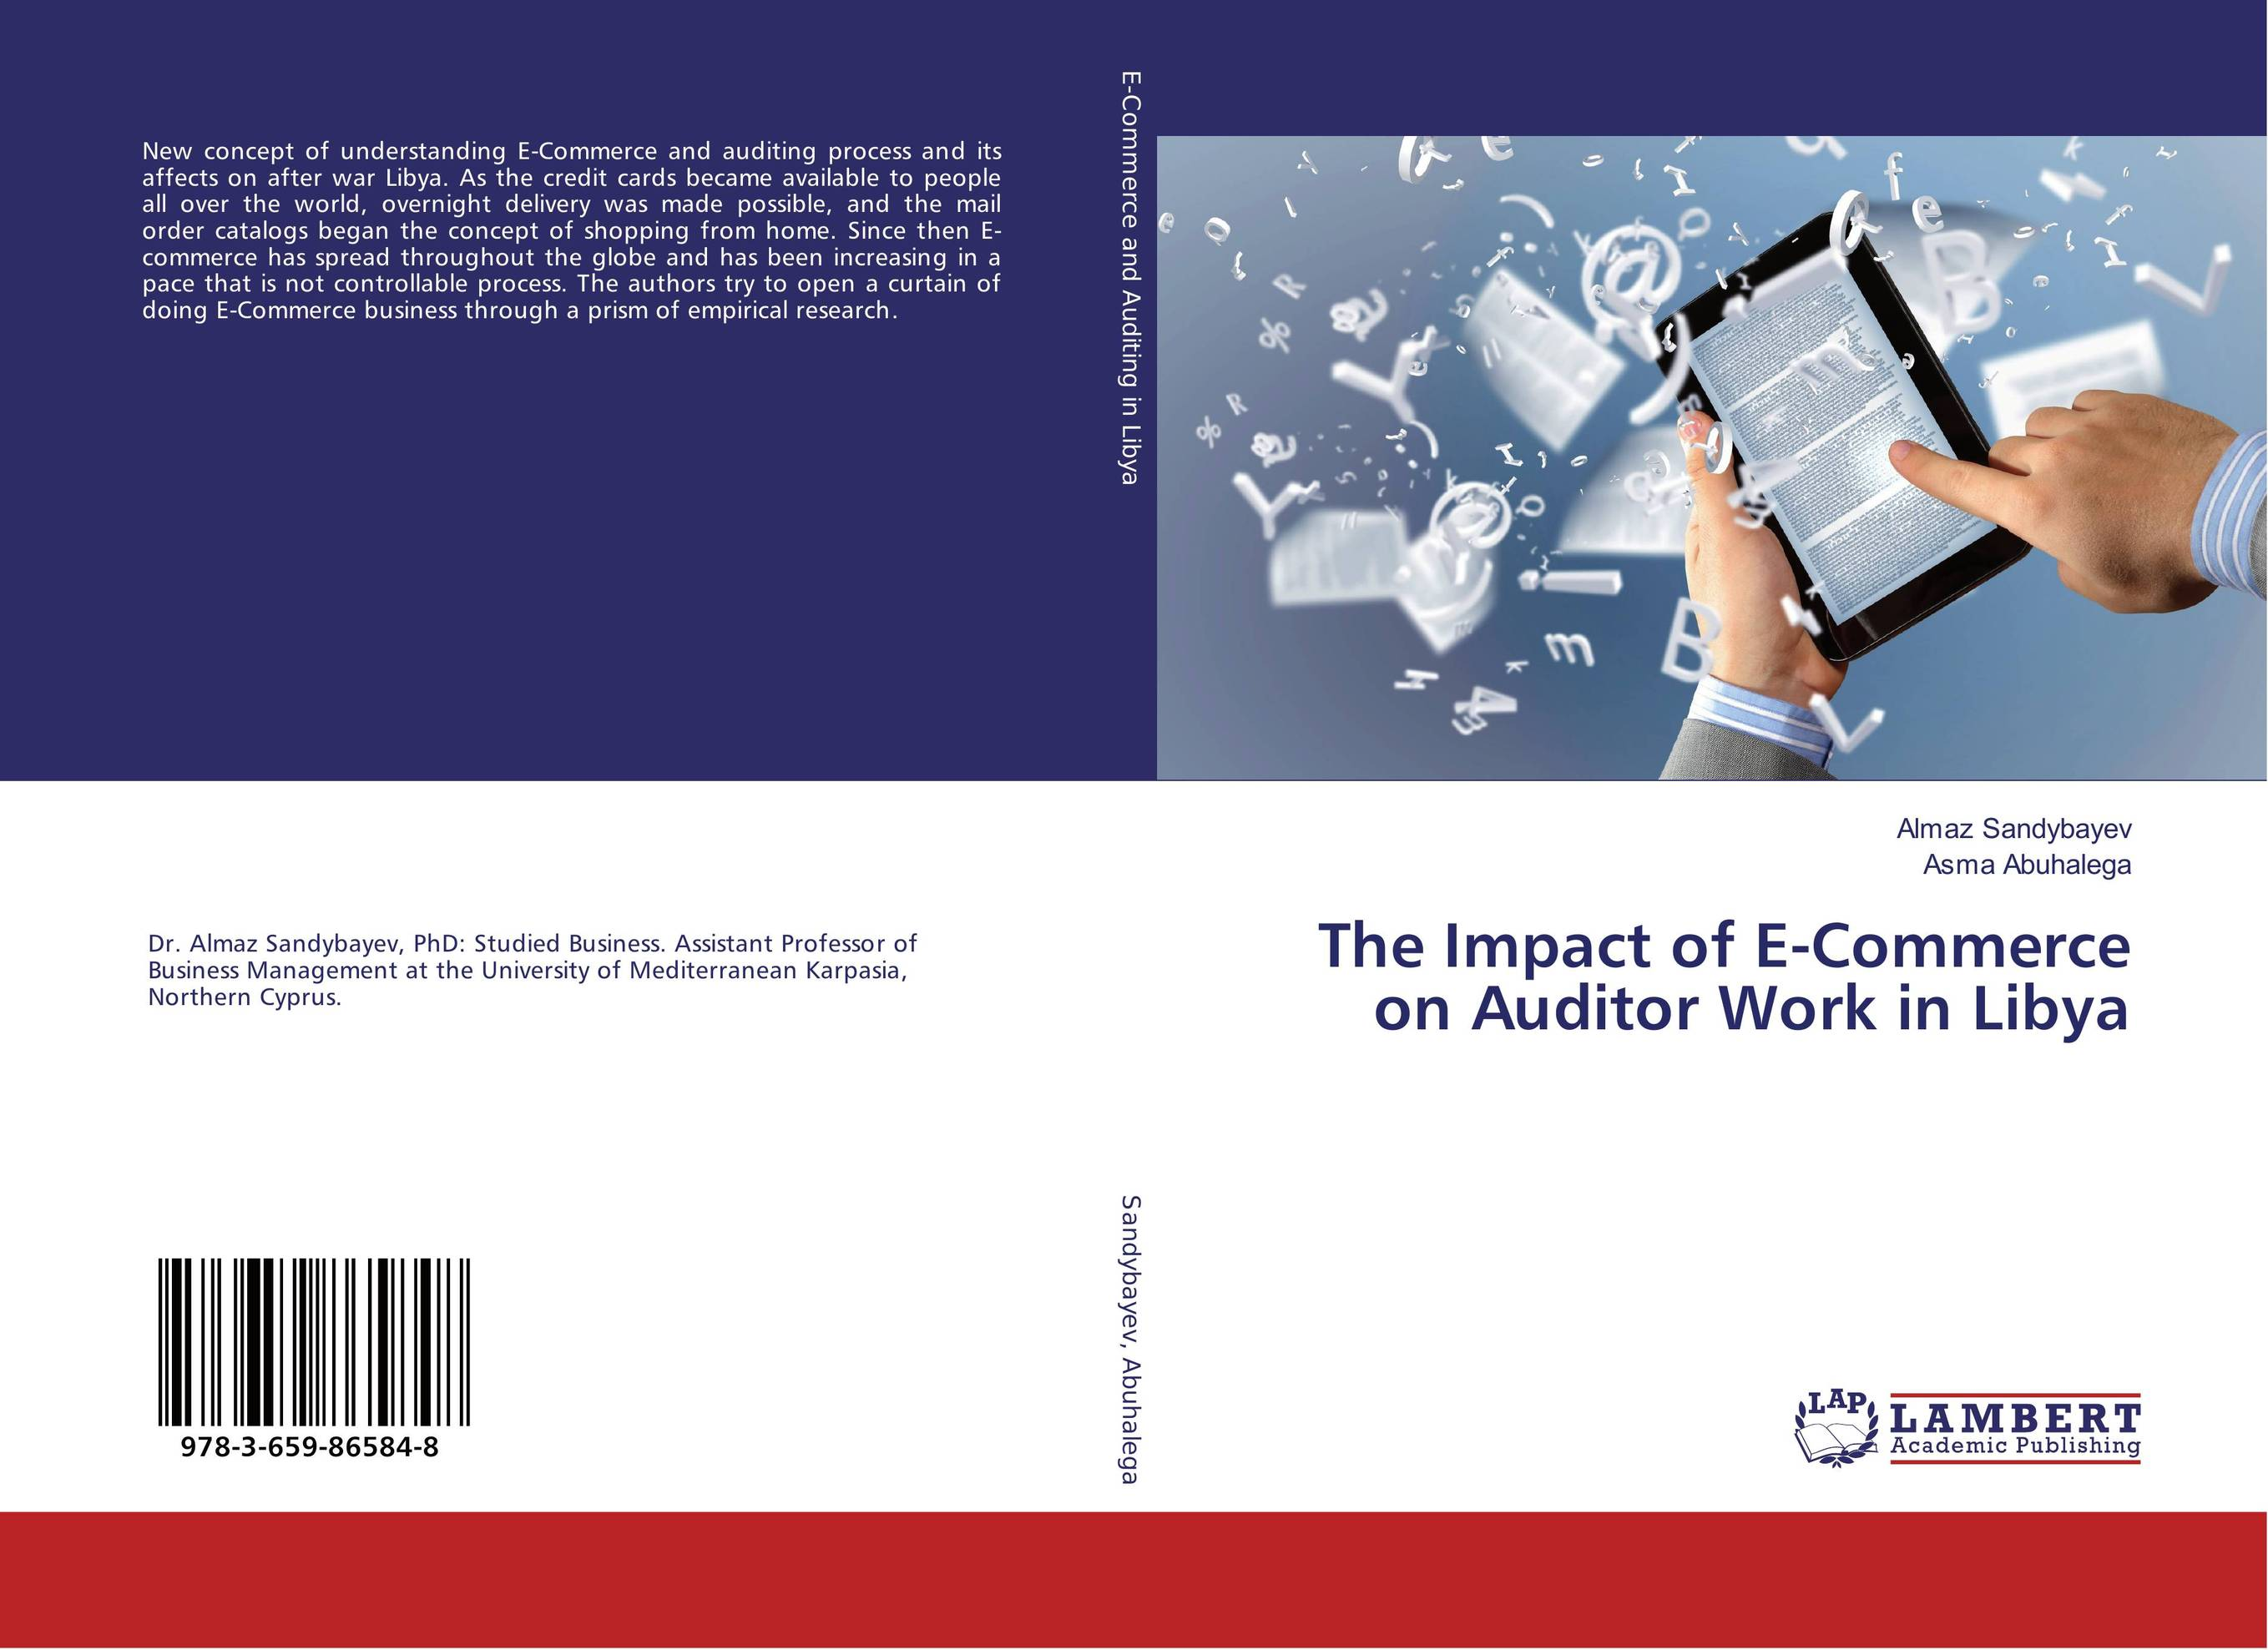 The Impact of E-Commerce on Auditor Work in Libya food e commerce